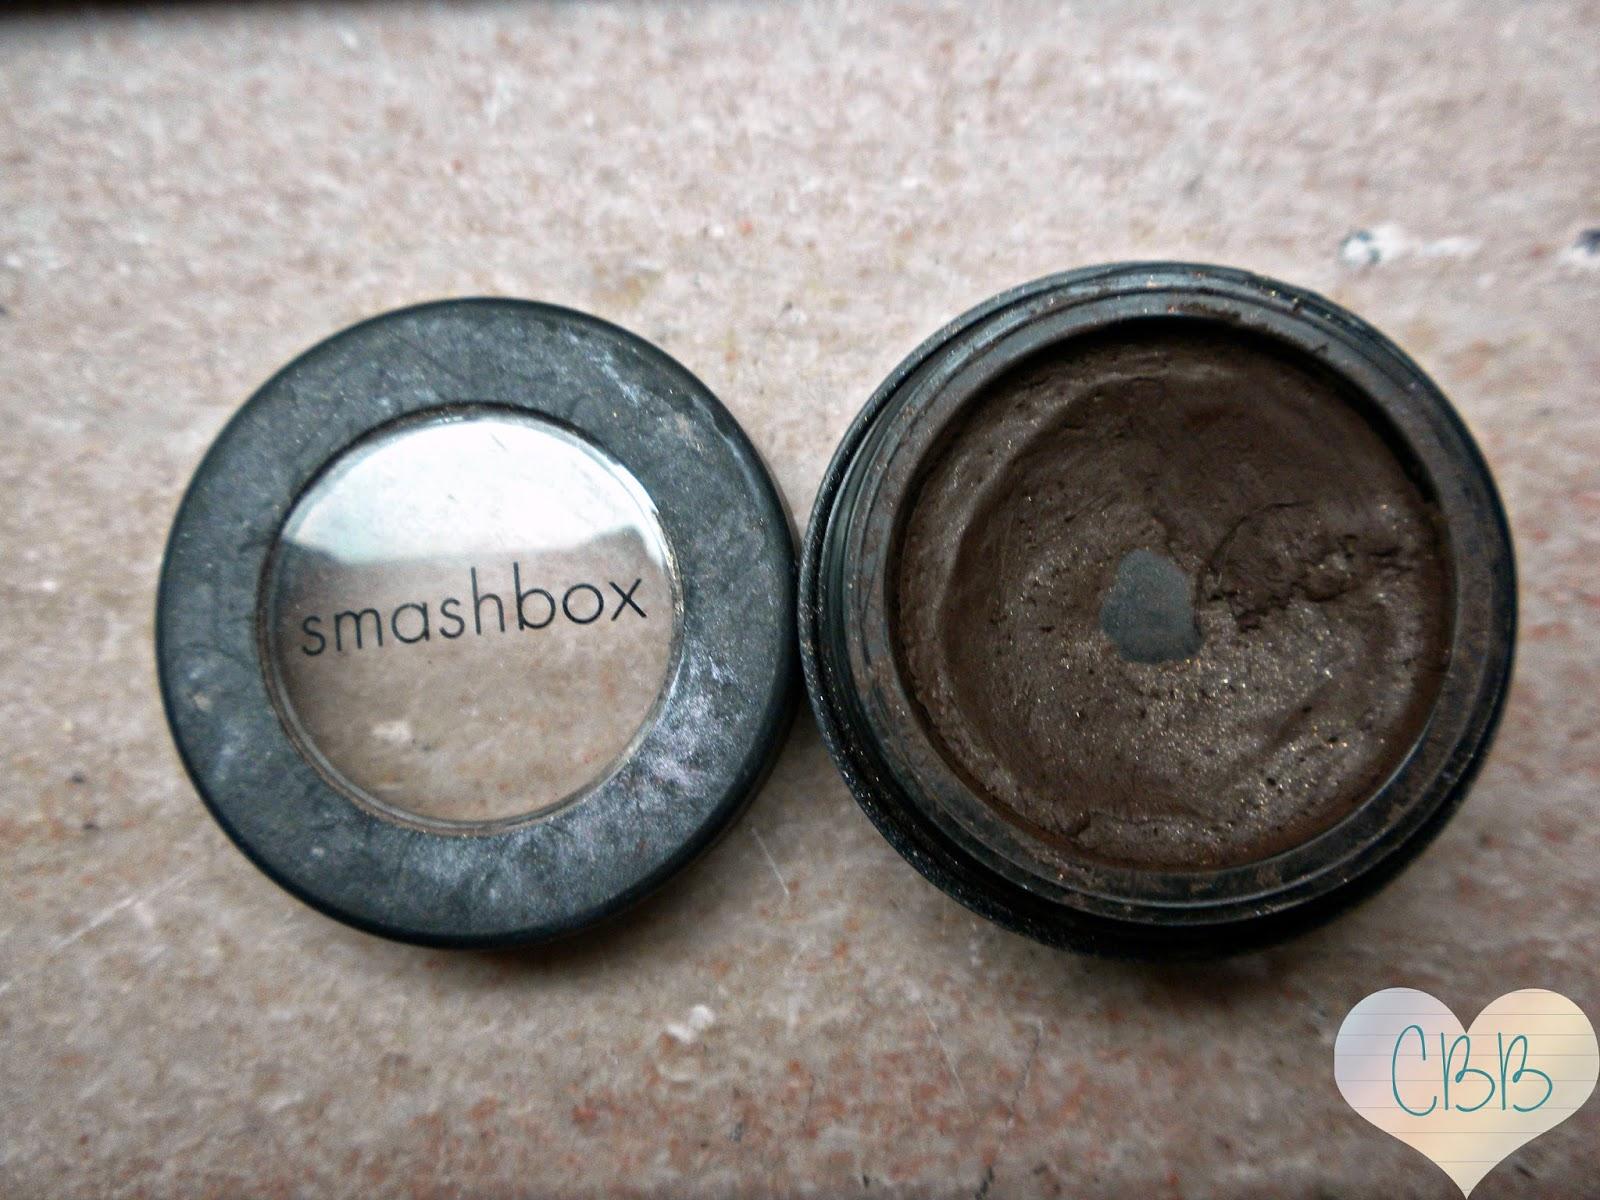 Cream Eyeliner: SMASHBOX Cream Eyeliner ($14)